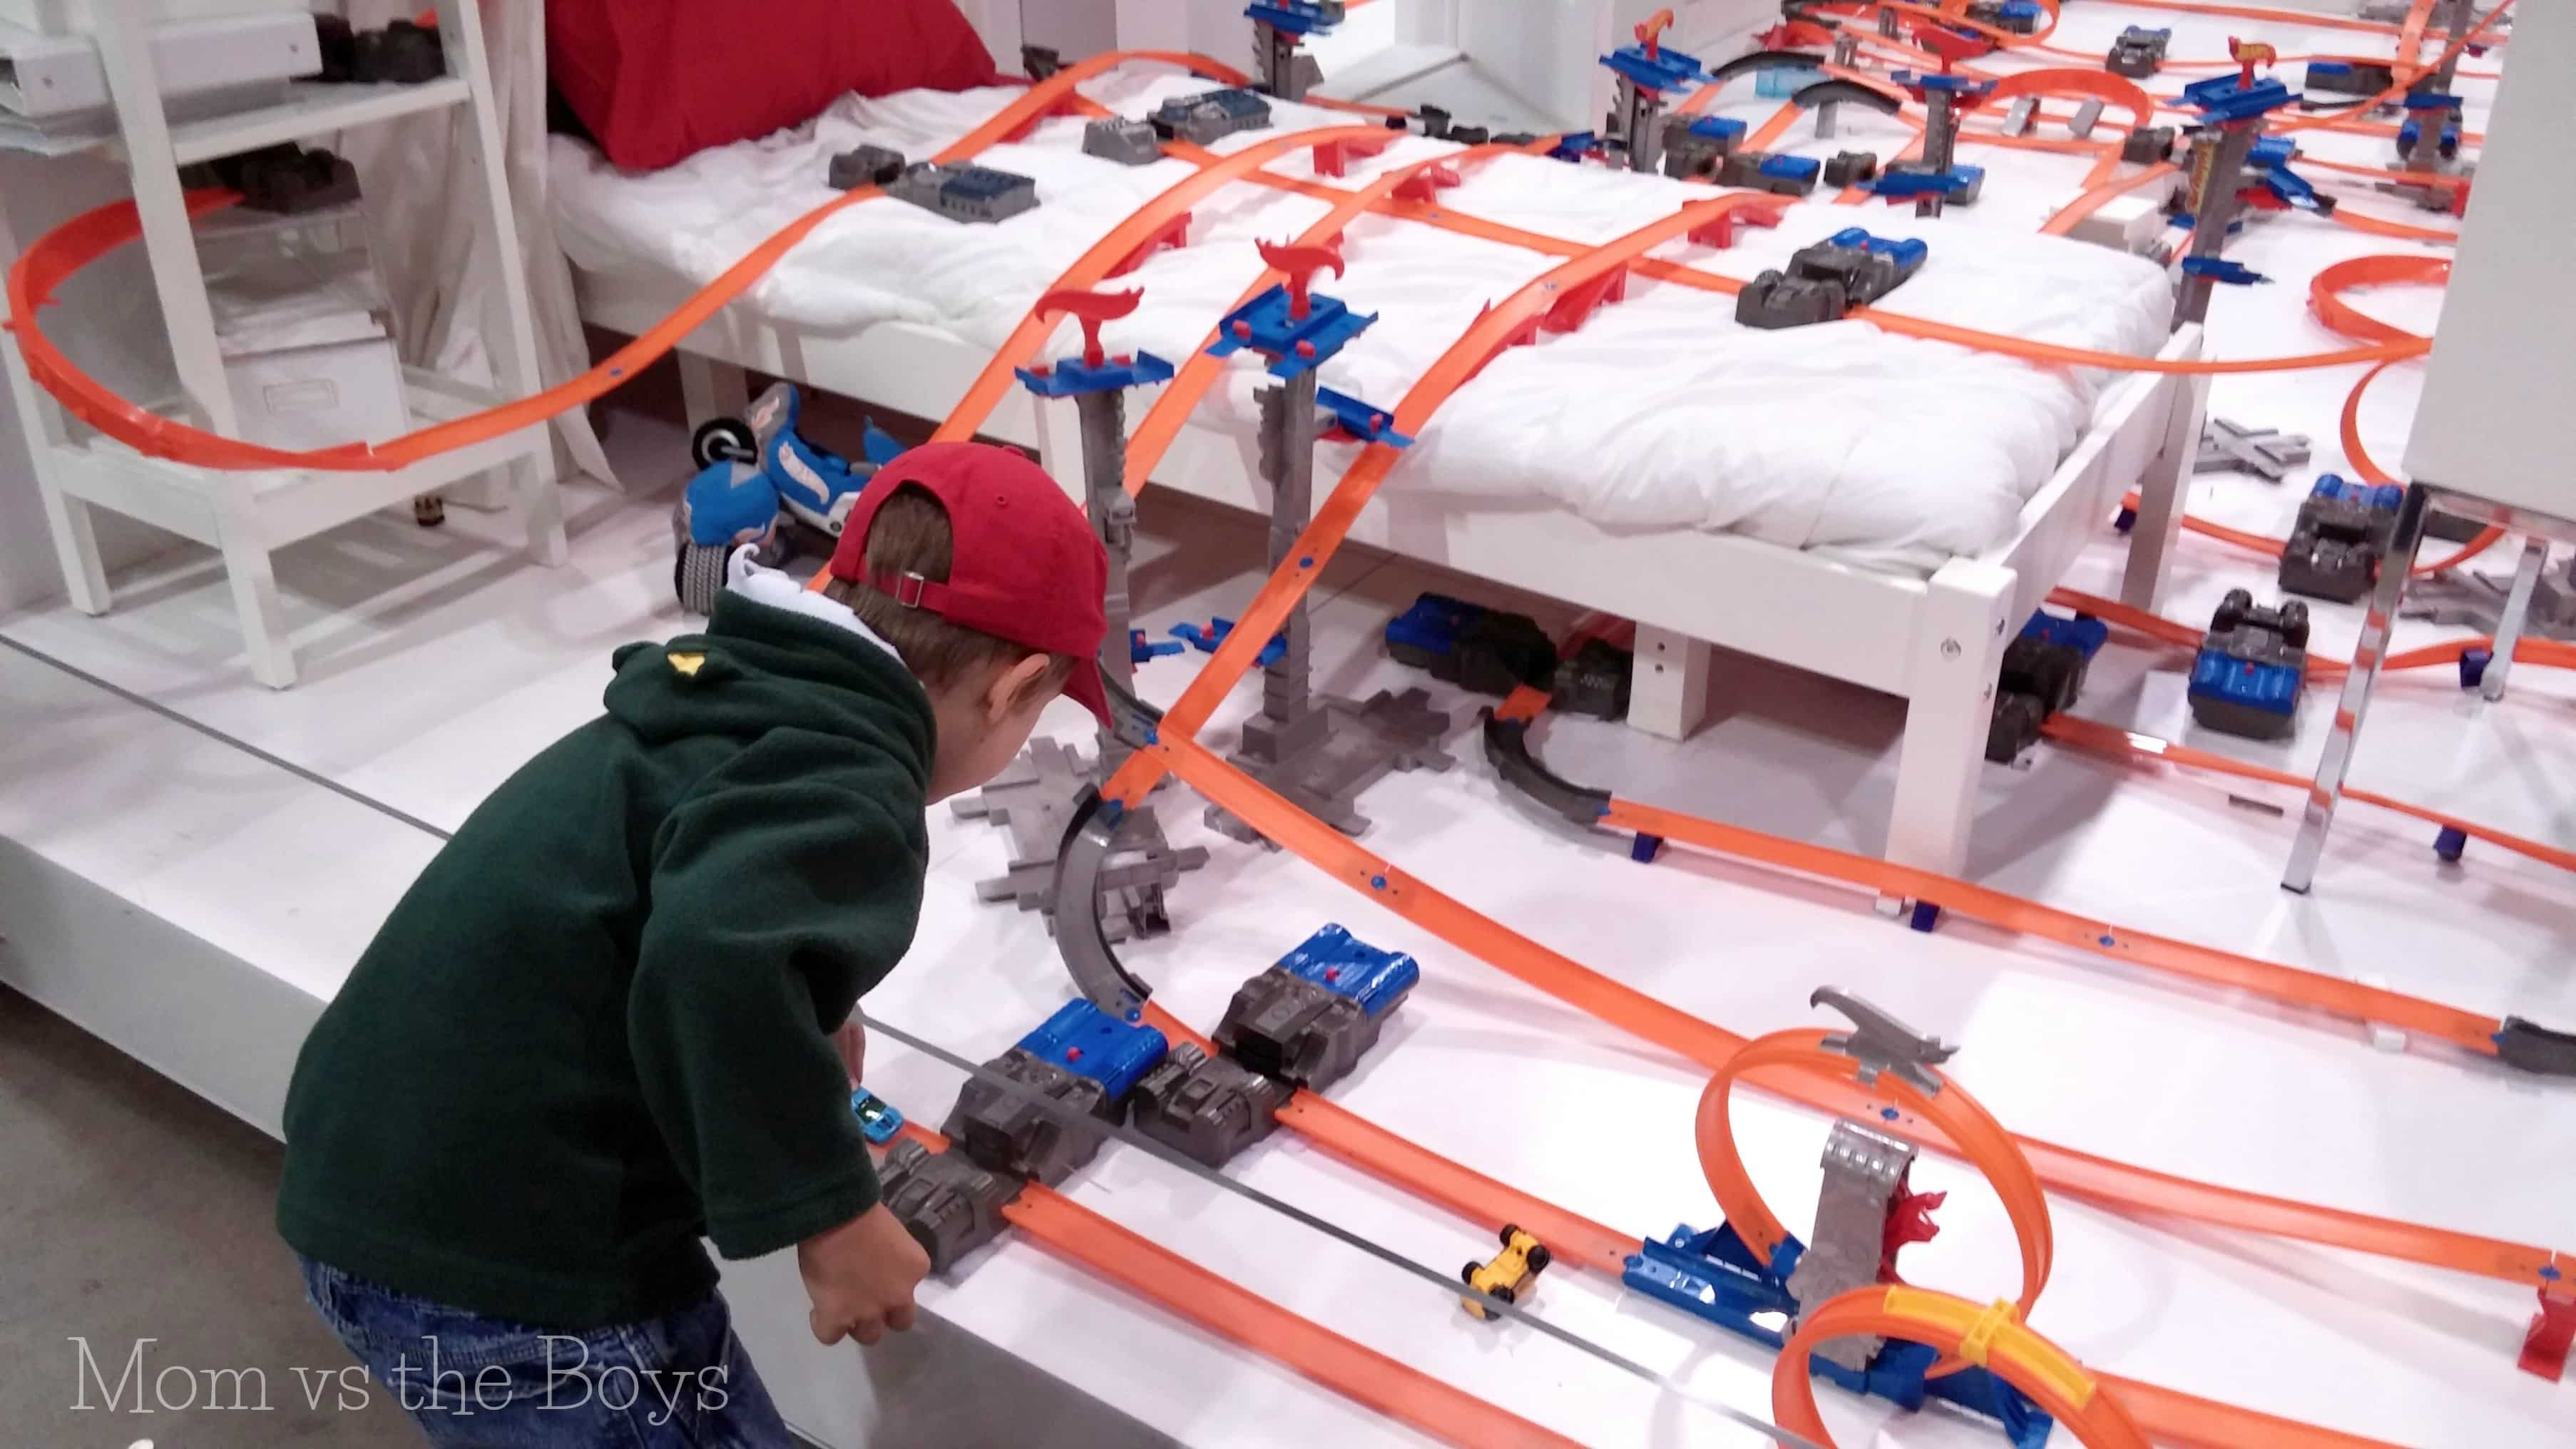 Kids Bedroom Ideas For Boys Heading To The Cne Check Out The Hot Wheels 174 Track